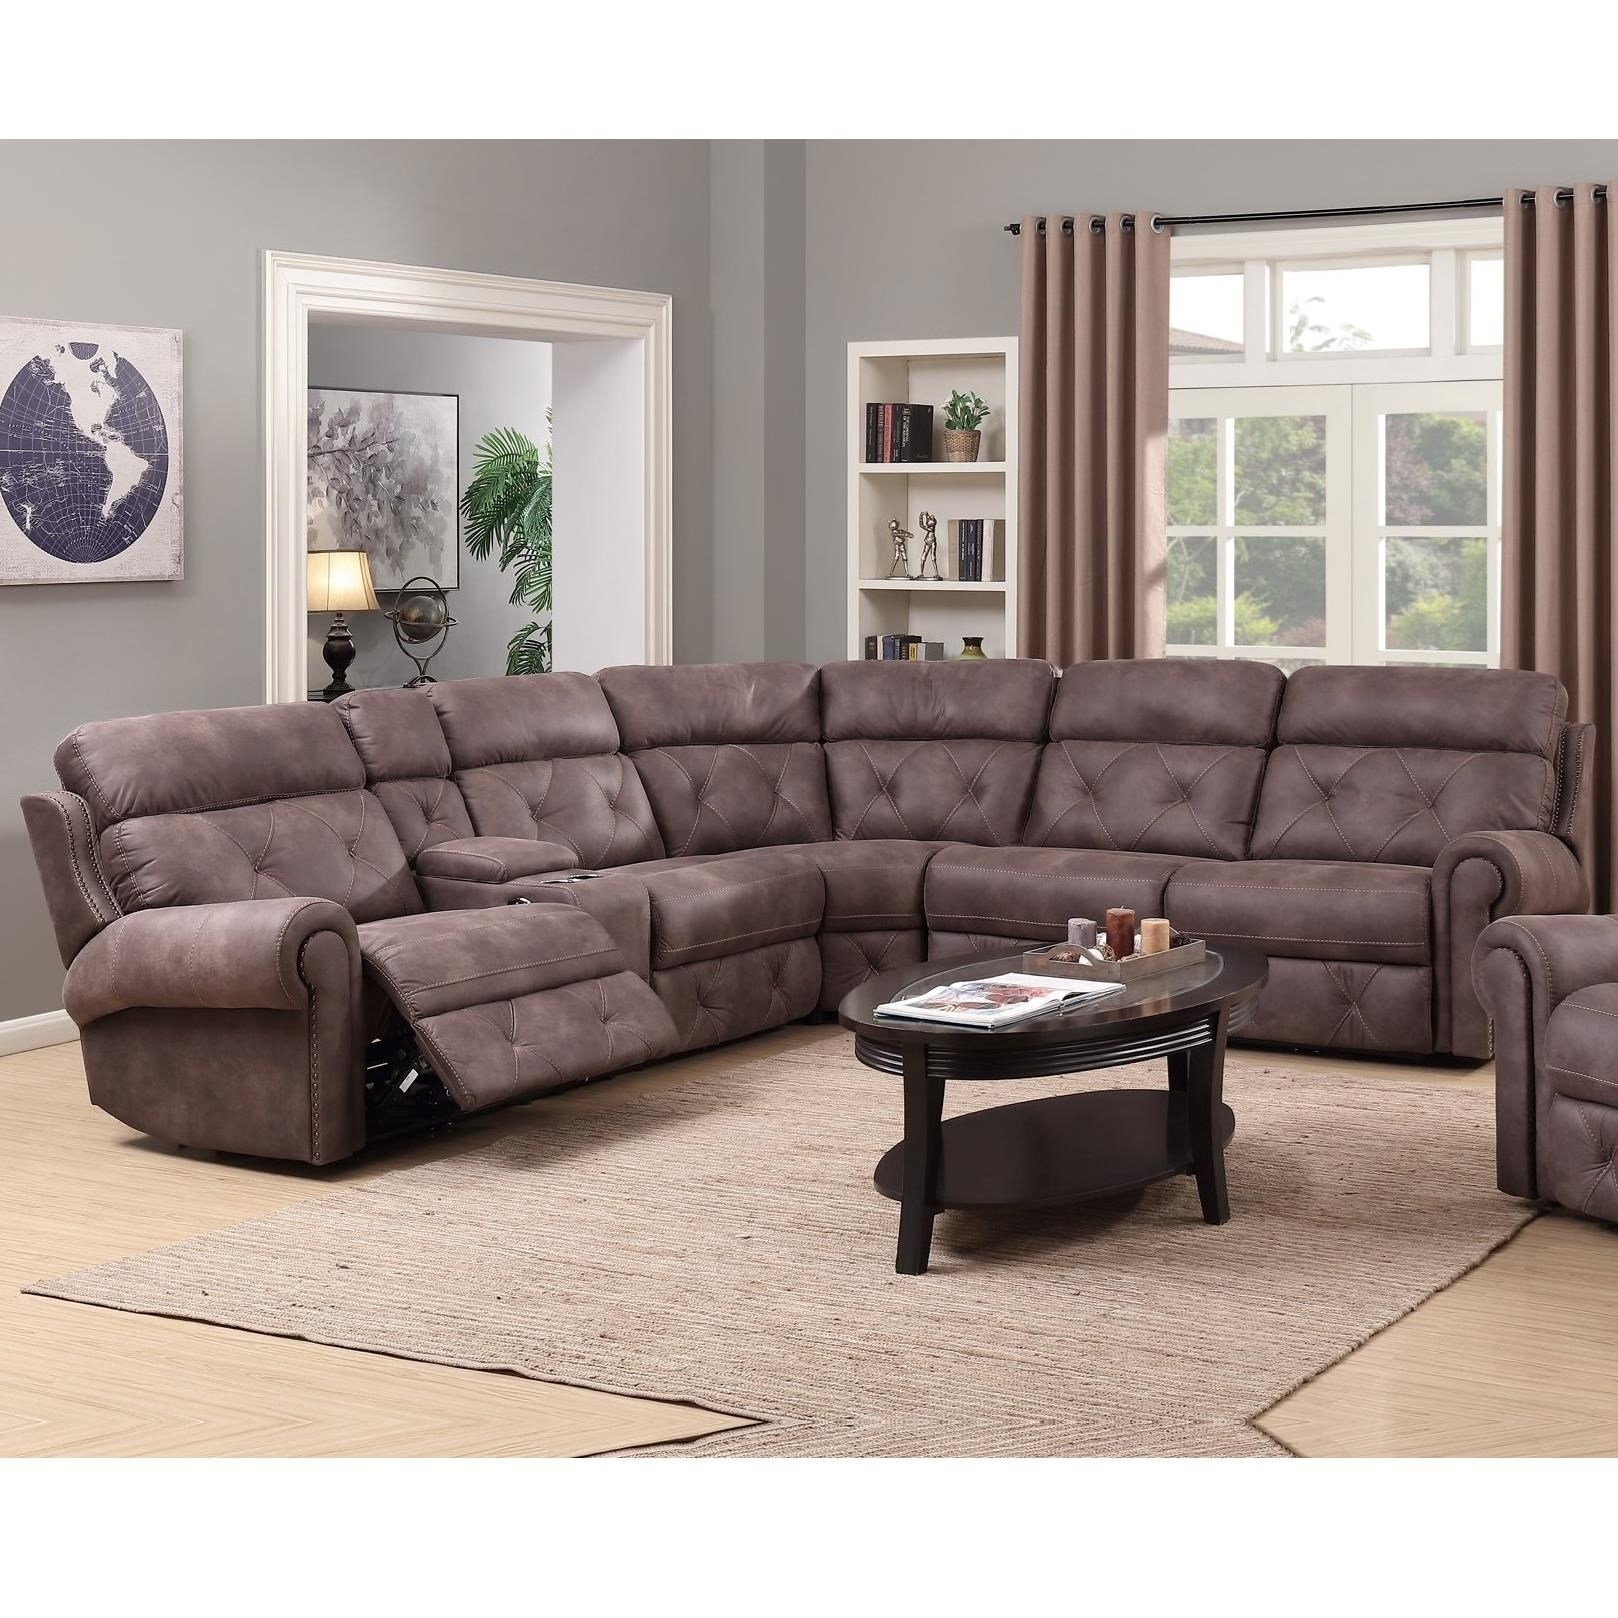 Sectional Sofas Birmingham Al | Farmersagentartruiz For Sectional Sofas At Birmingham Al (Image 7 of 10)